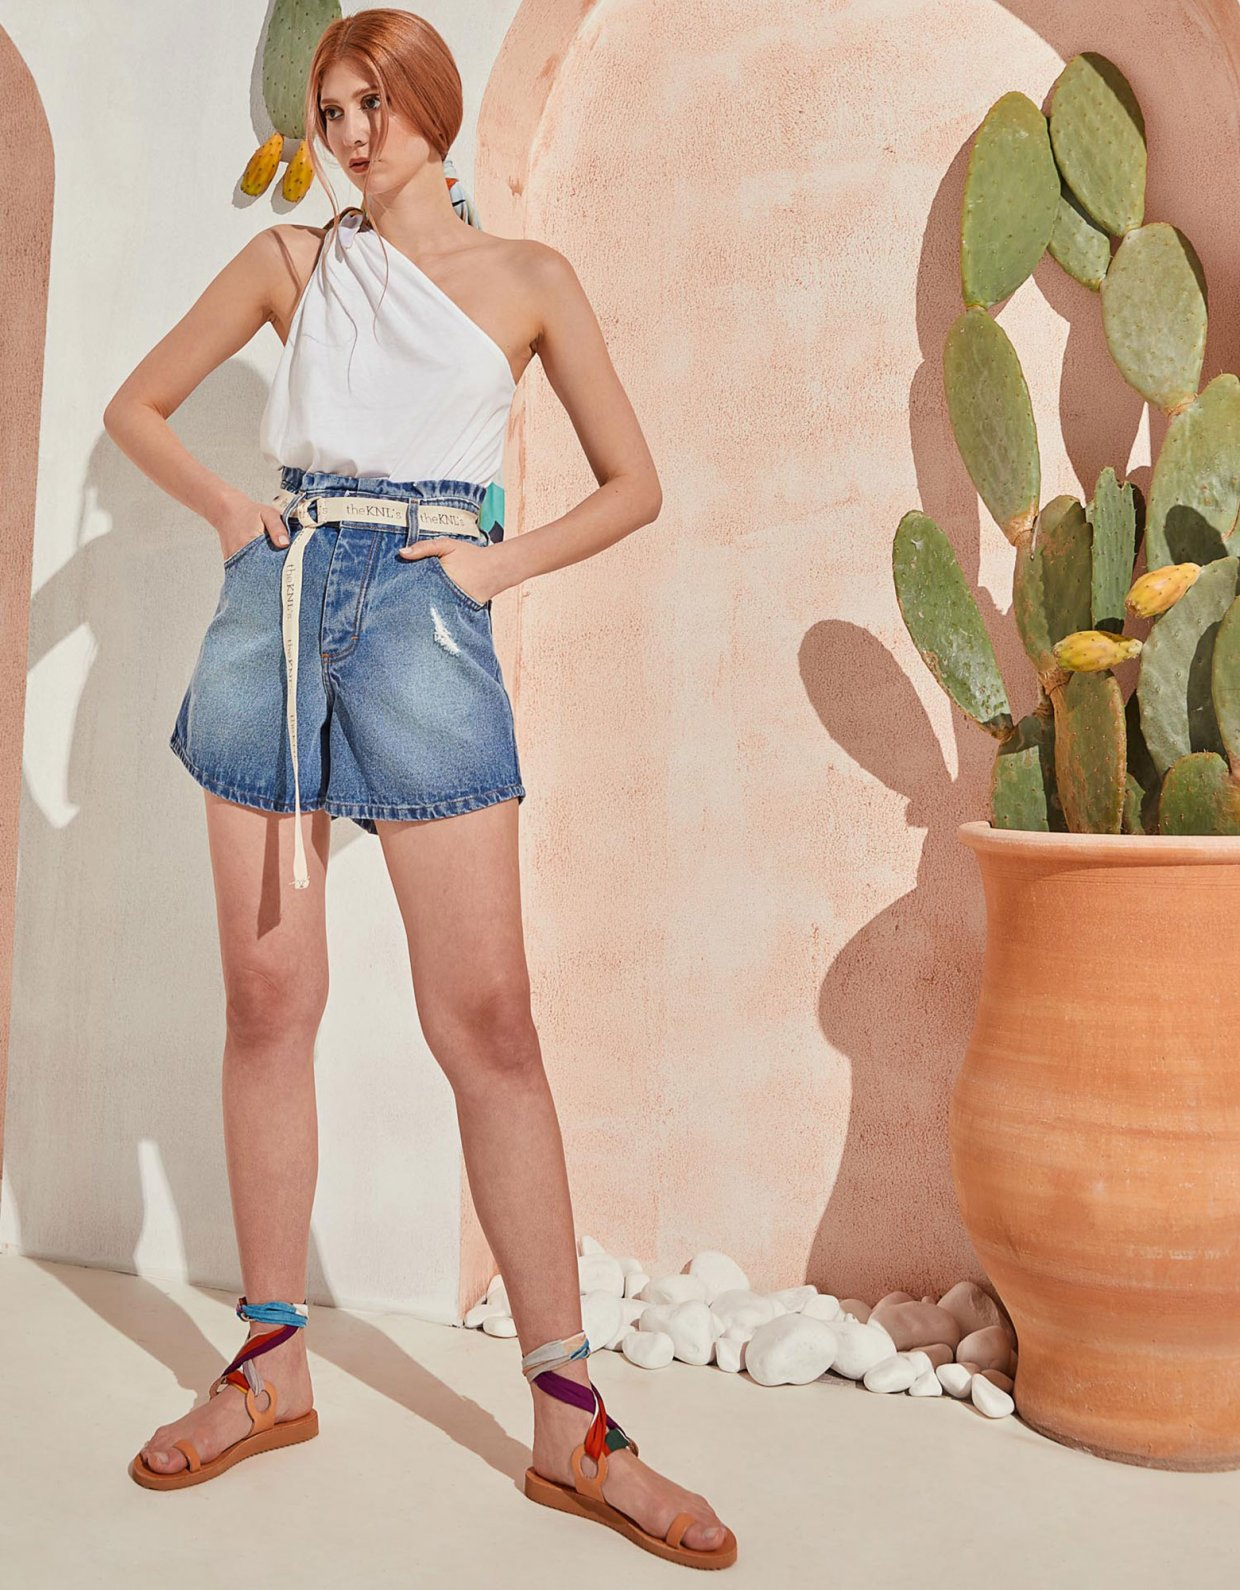 The Knl's Hitch jean shorts med blue